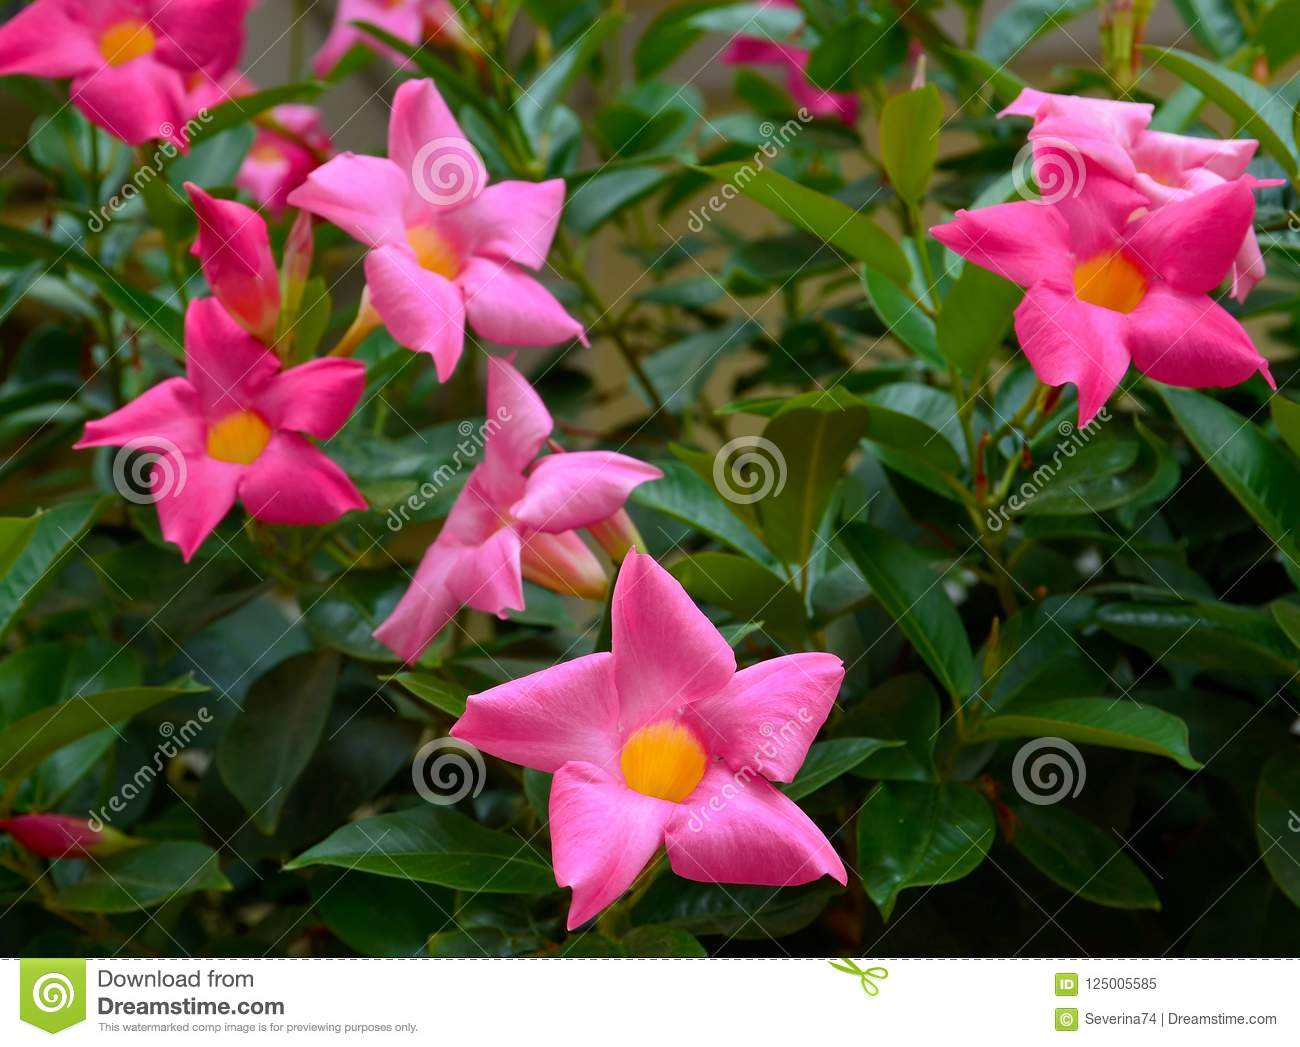 Pink flowers names and picture topsimages pink desert rose also known the names adenium obesum impala lily jpg 1300x1047 pink flowers names mightylinksfo